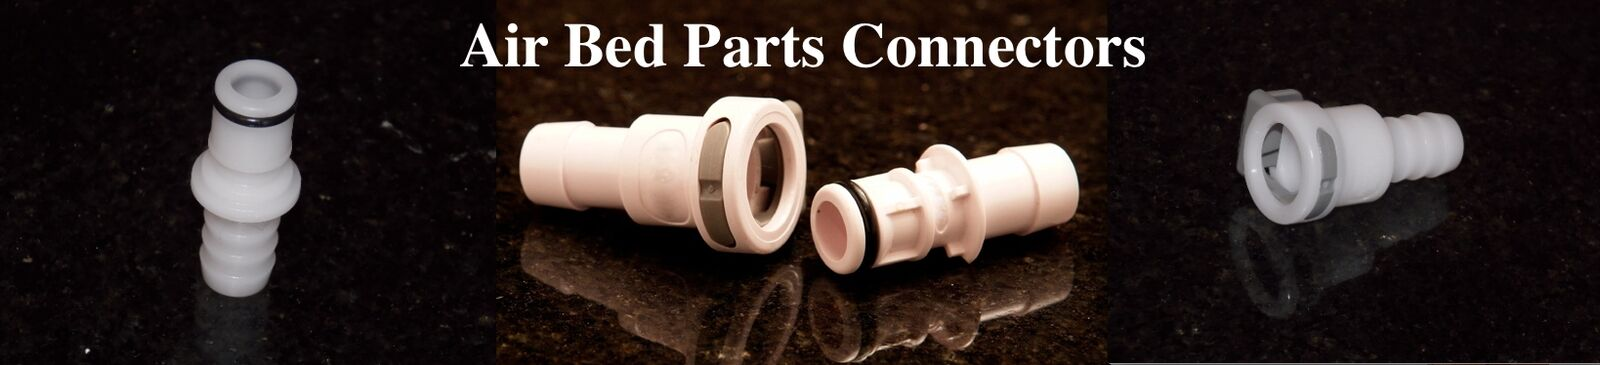 airbedparts